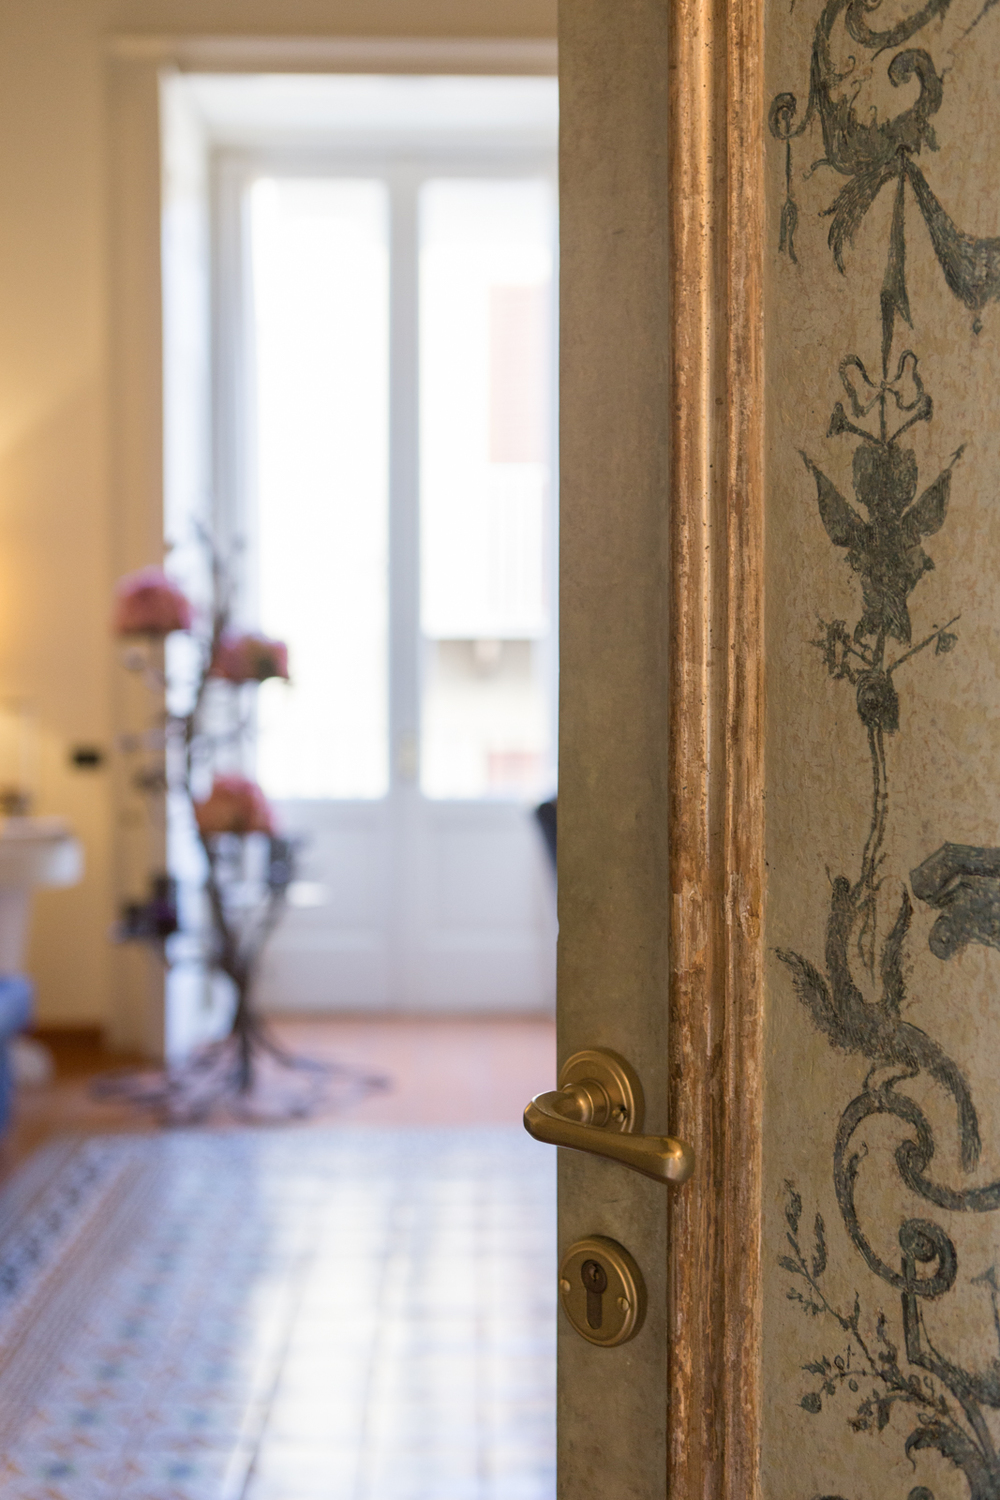 Doors at Maison Tofani retain the artwork of the 18th century